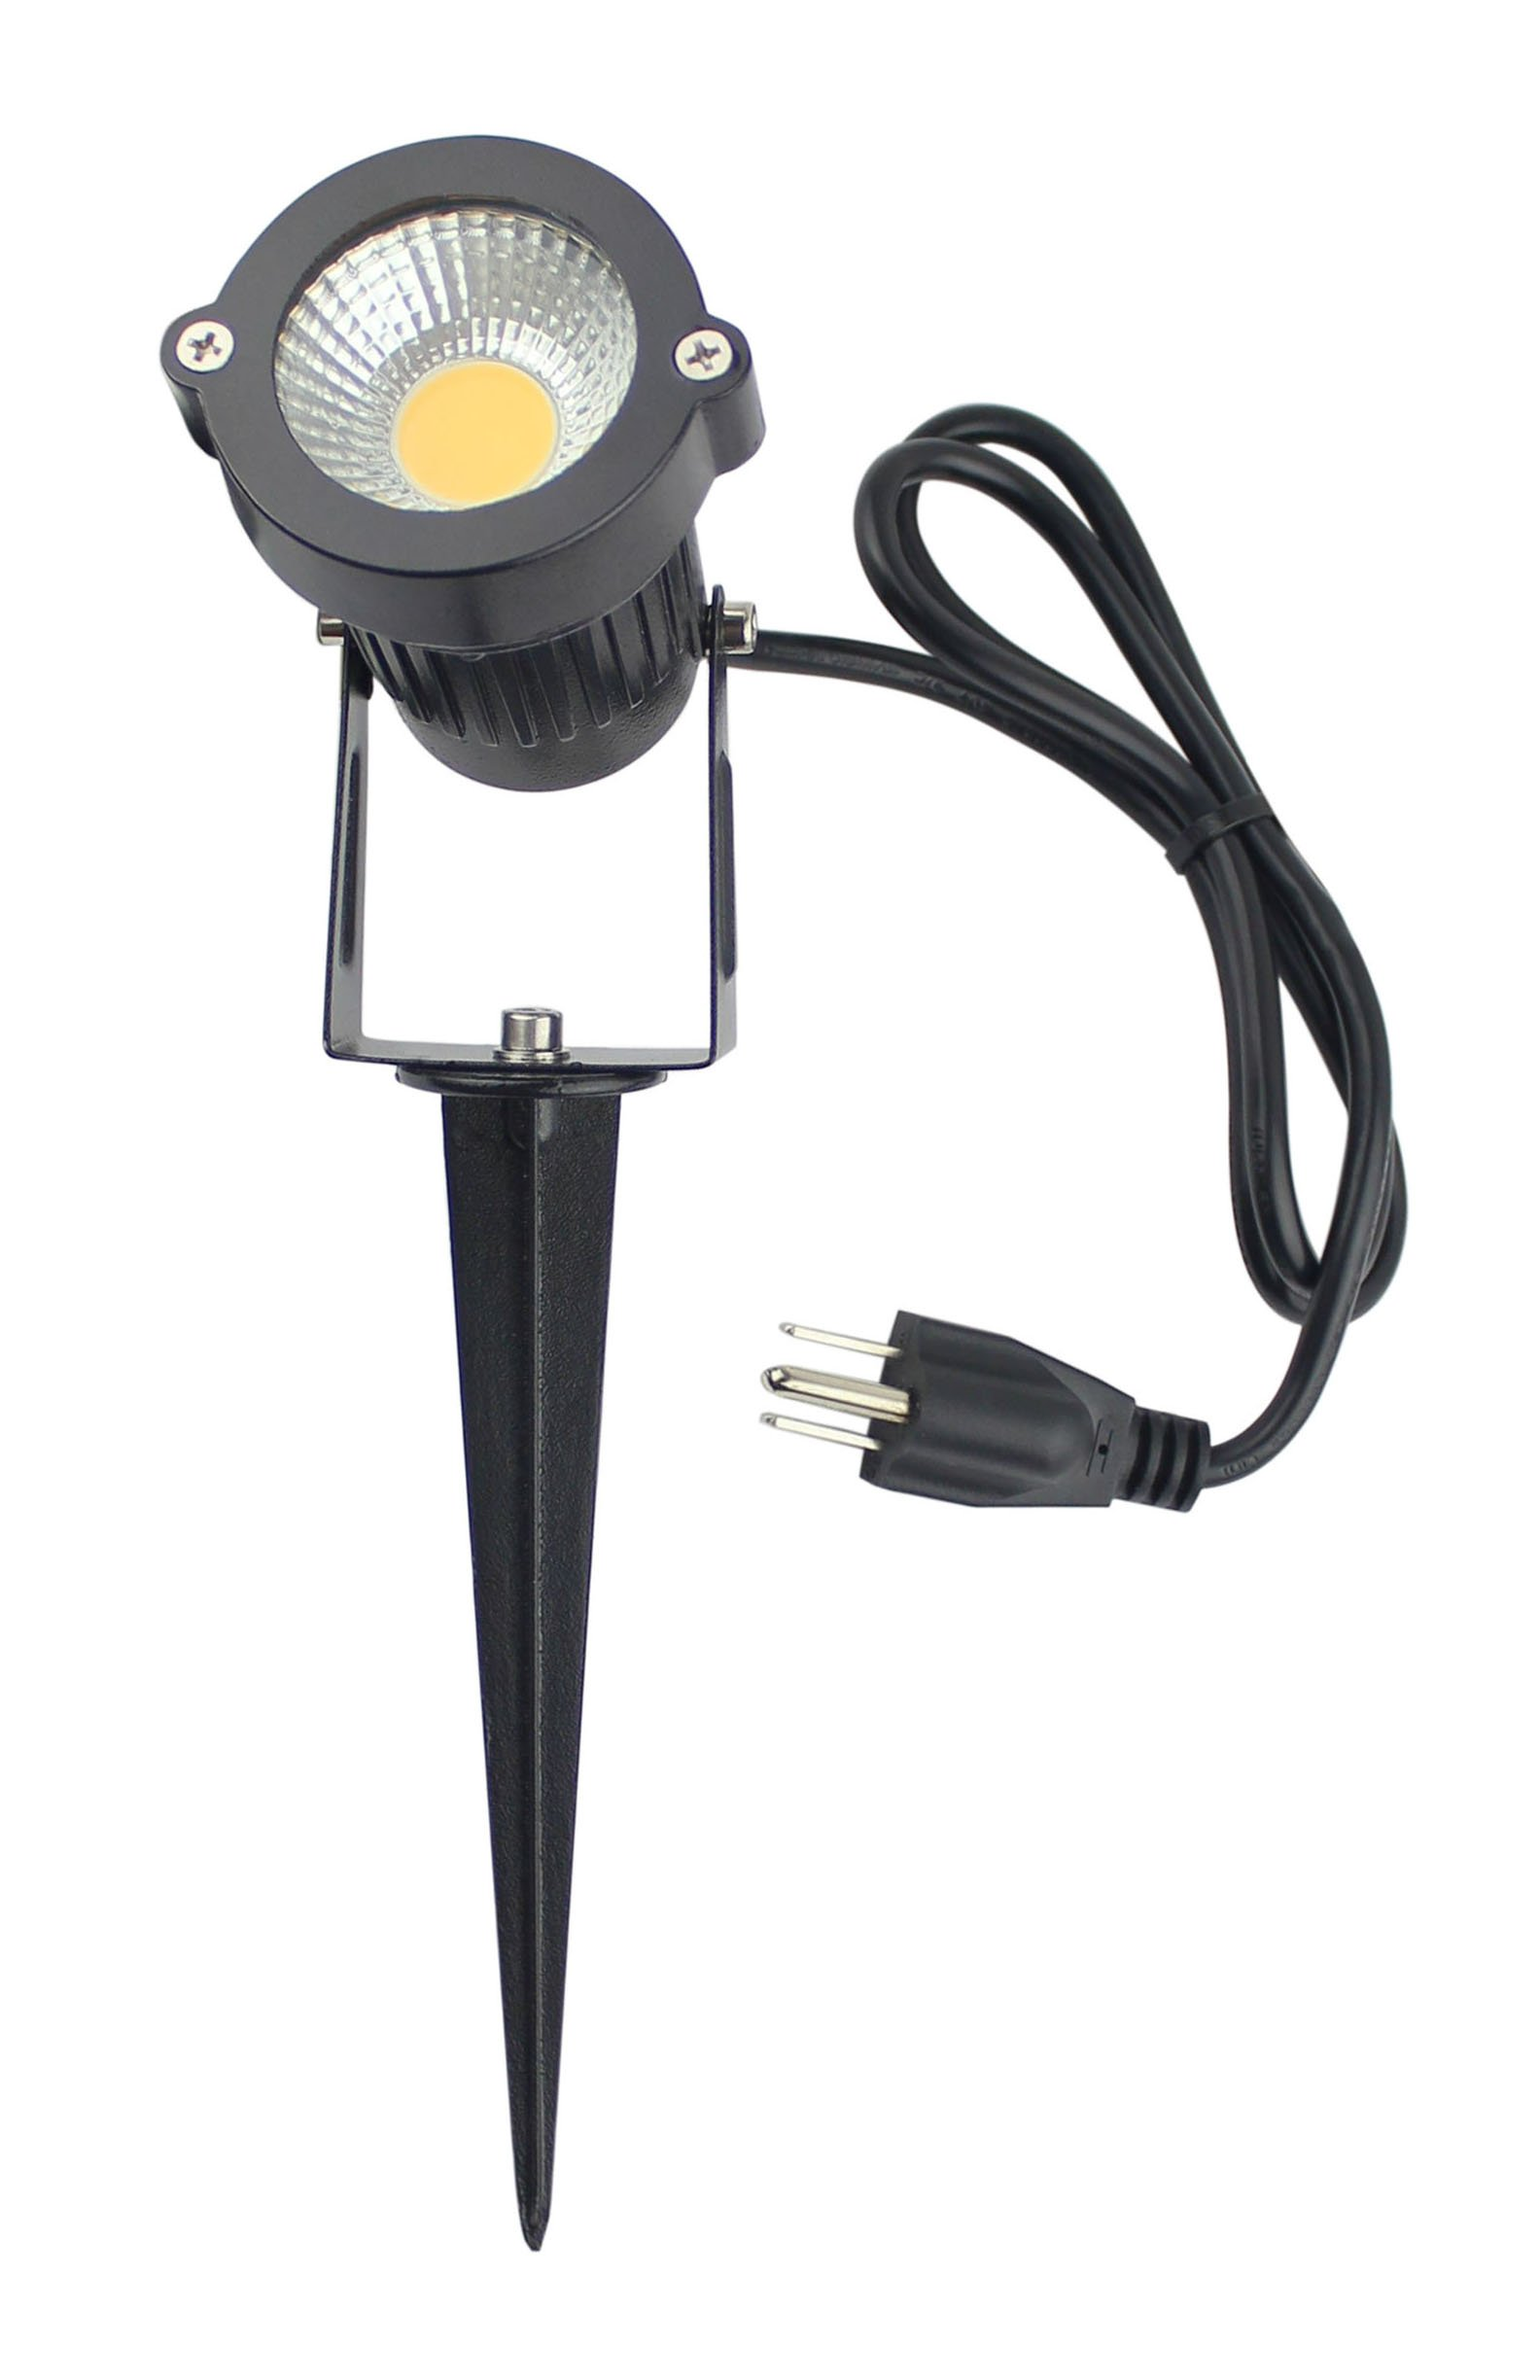 J.LUMI GSS6005 LED Spotlight 5W, 120V AC Line Voltage, 3000K Warm White, Outdoor Use, Metal Stake, Landscape Spotlight, Flag Light, Outdoor Spotlight, UL Listed 3-ft Cord with Plug